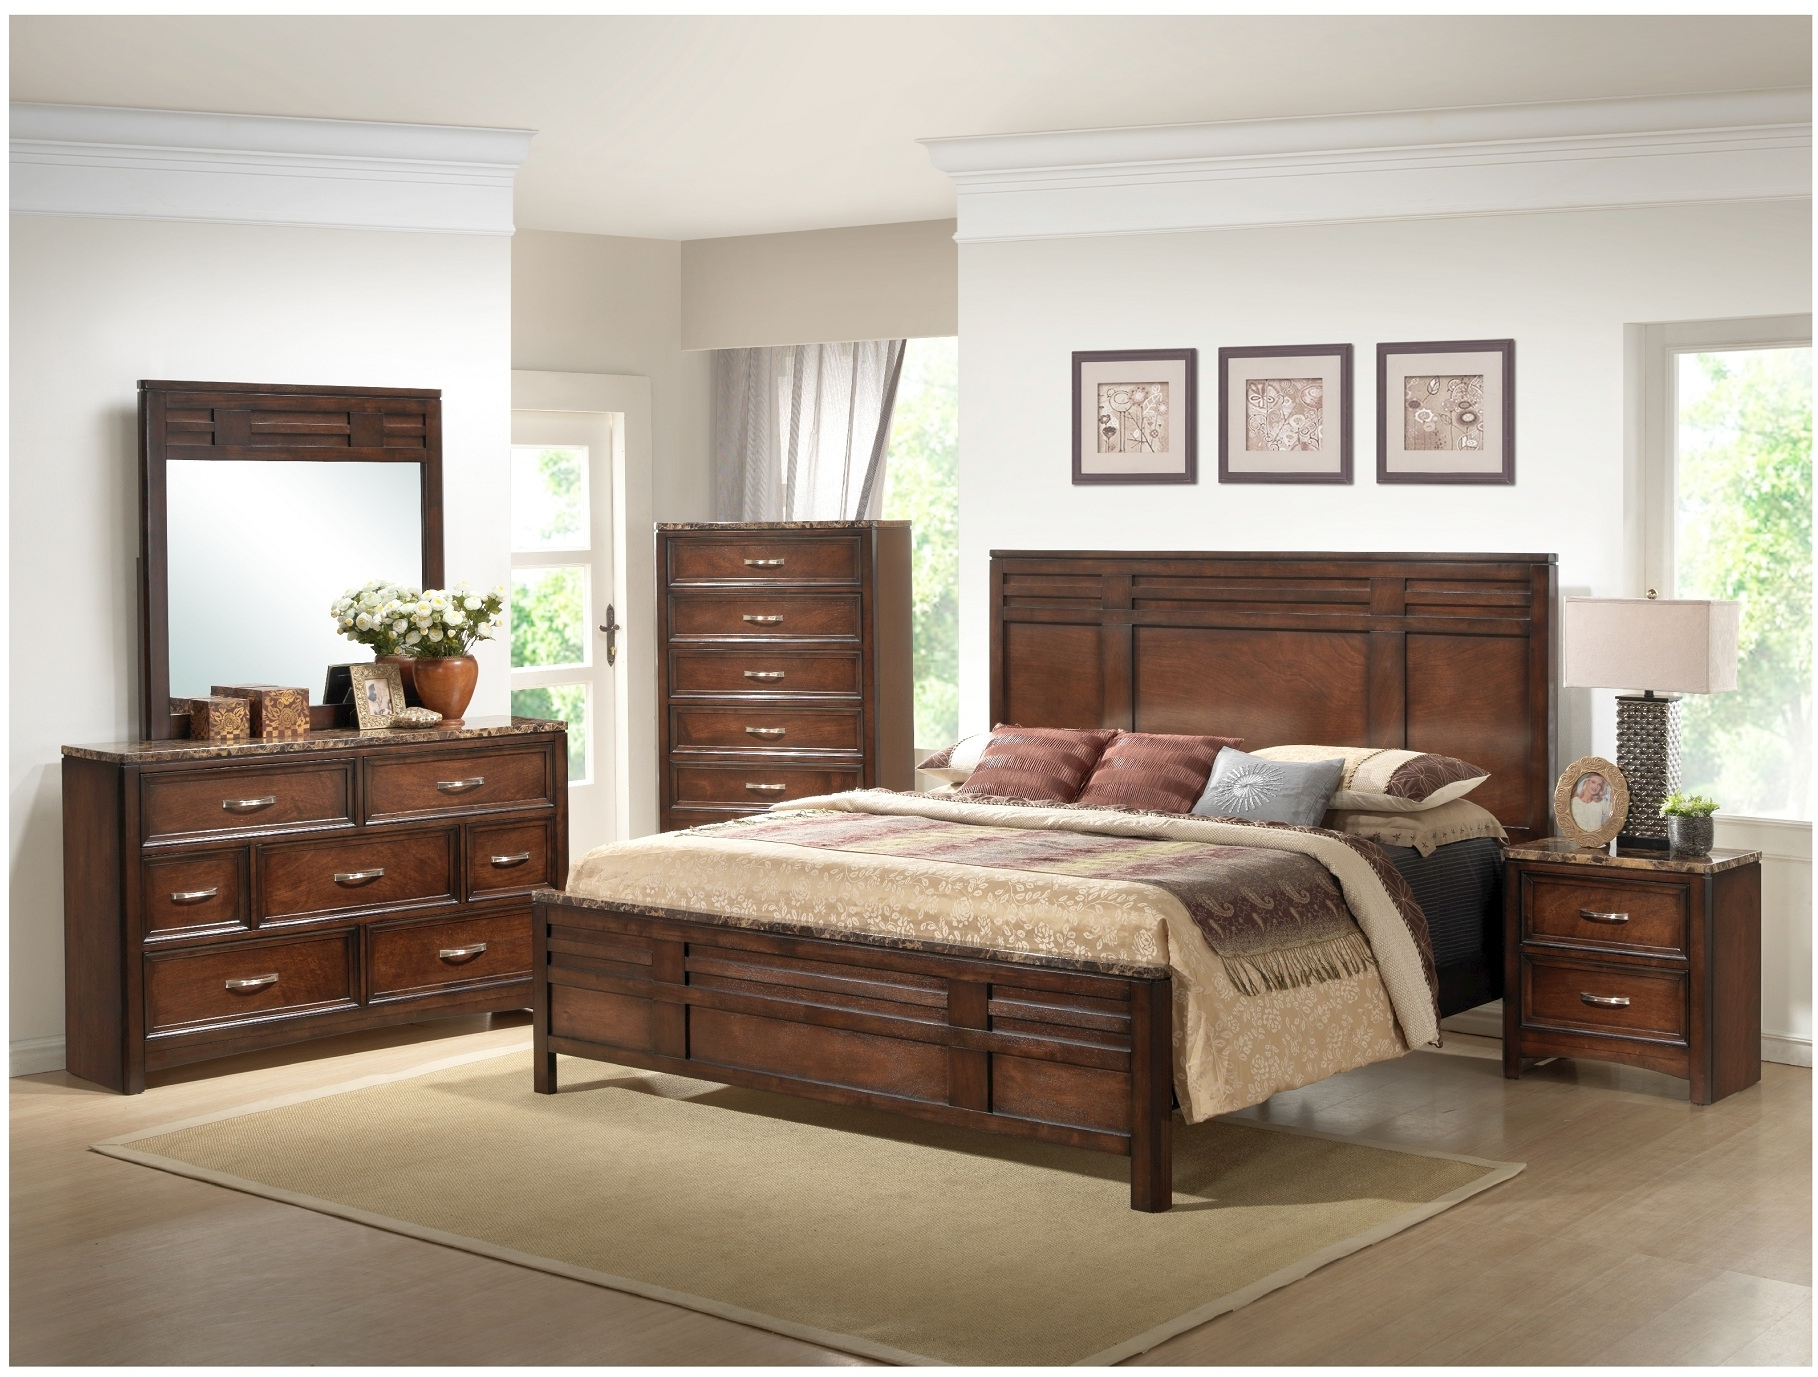 Get Your Walnut Bedroom Furniture - darbylanefurniture.com